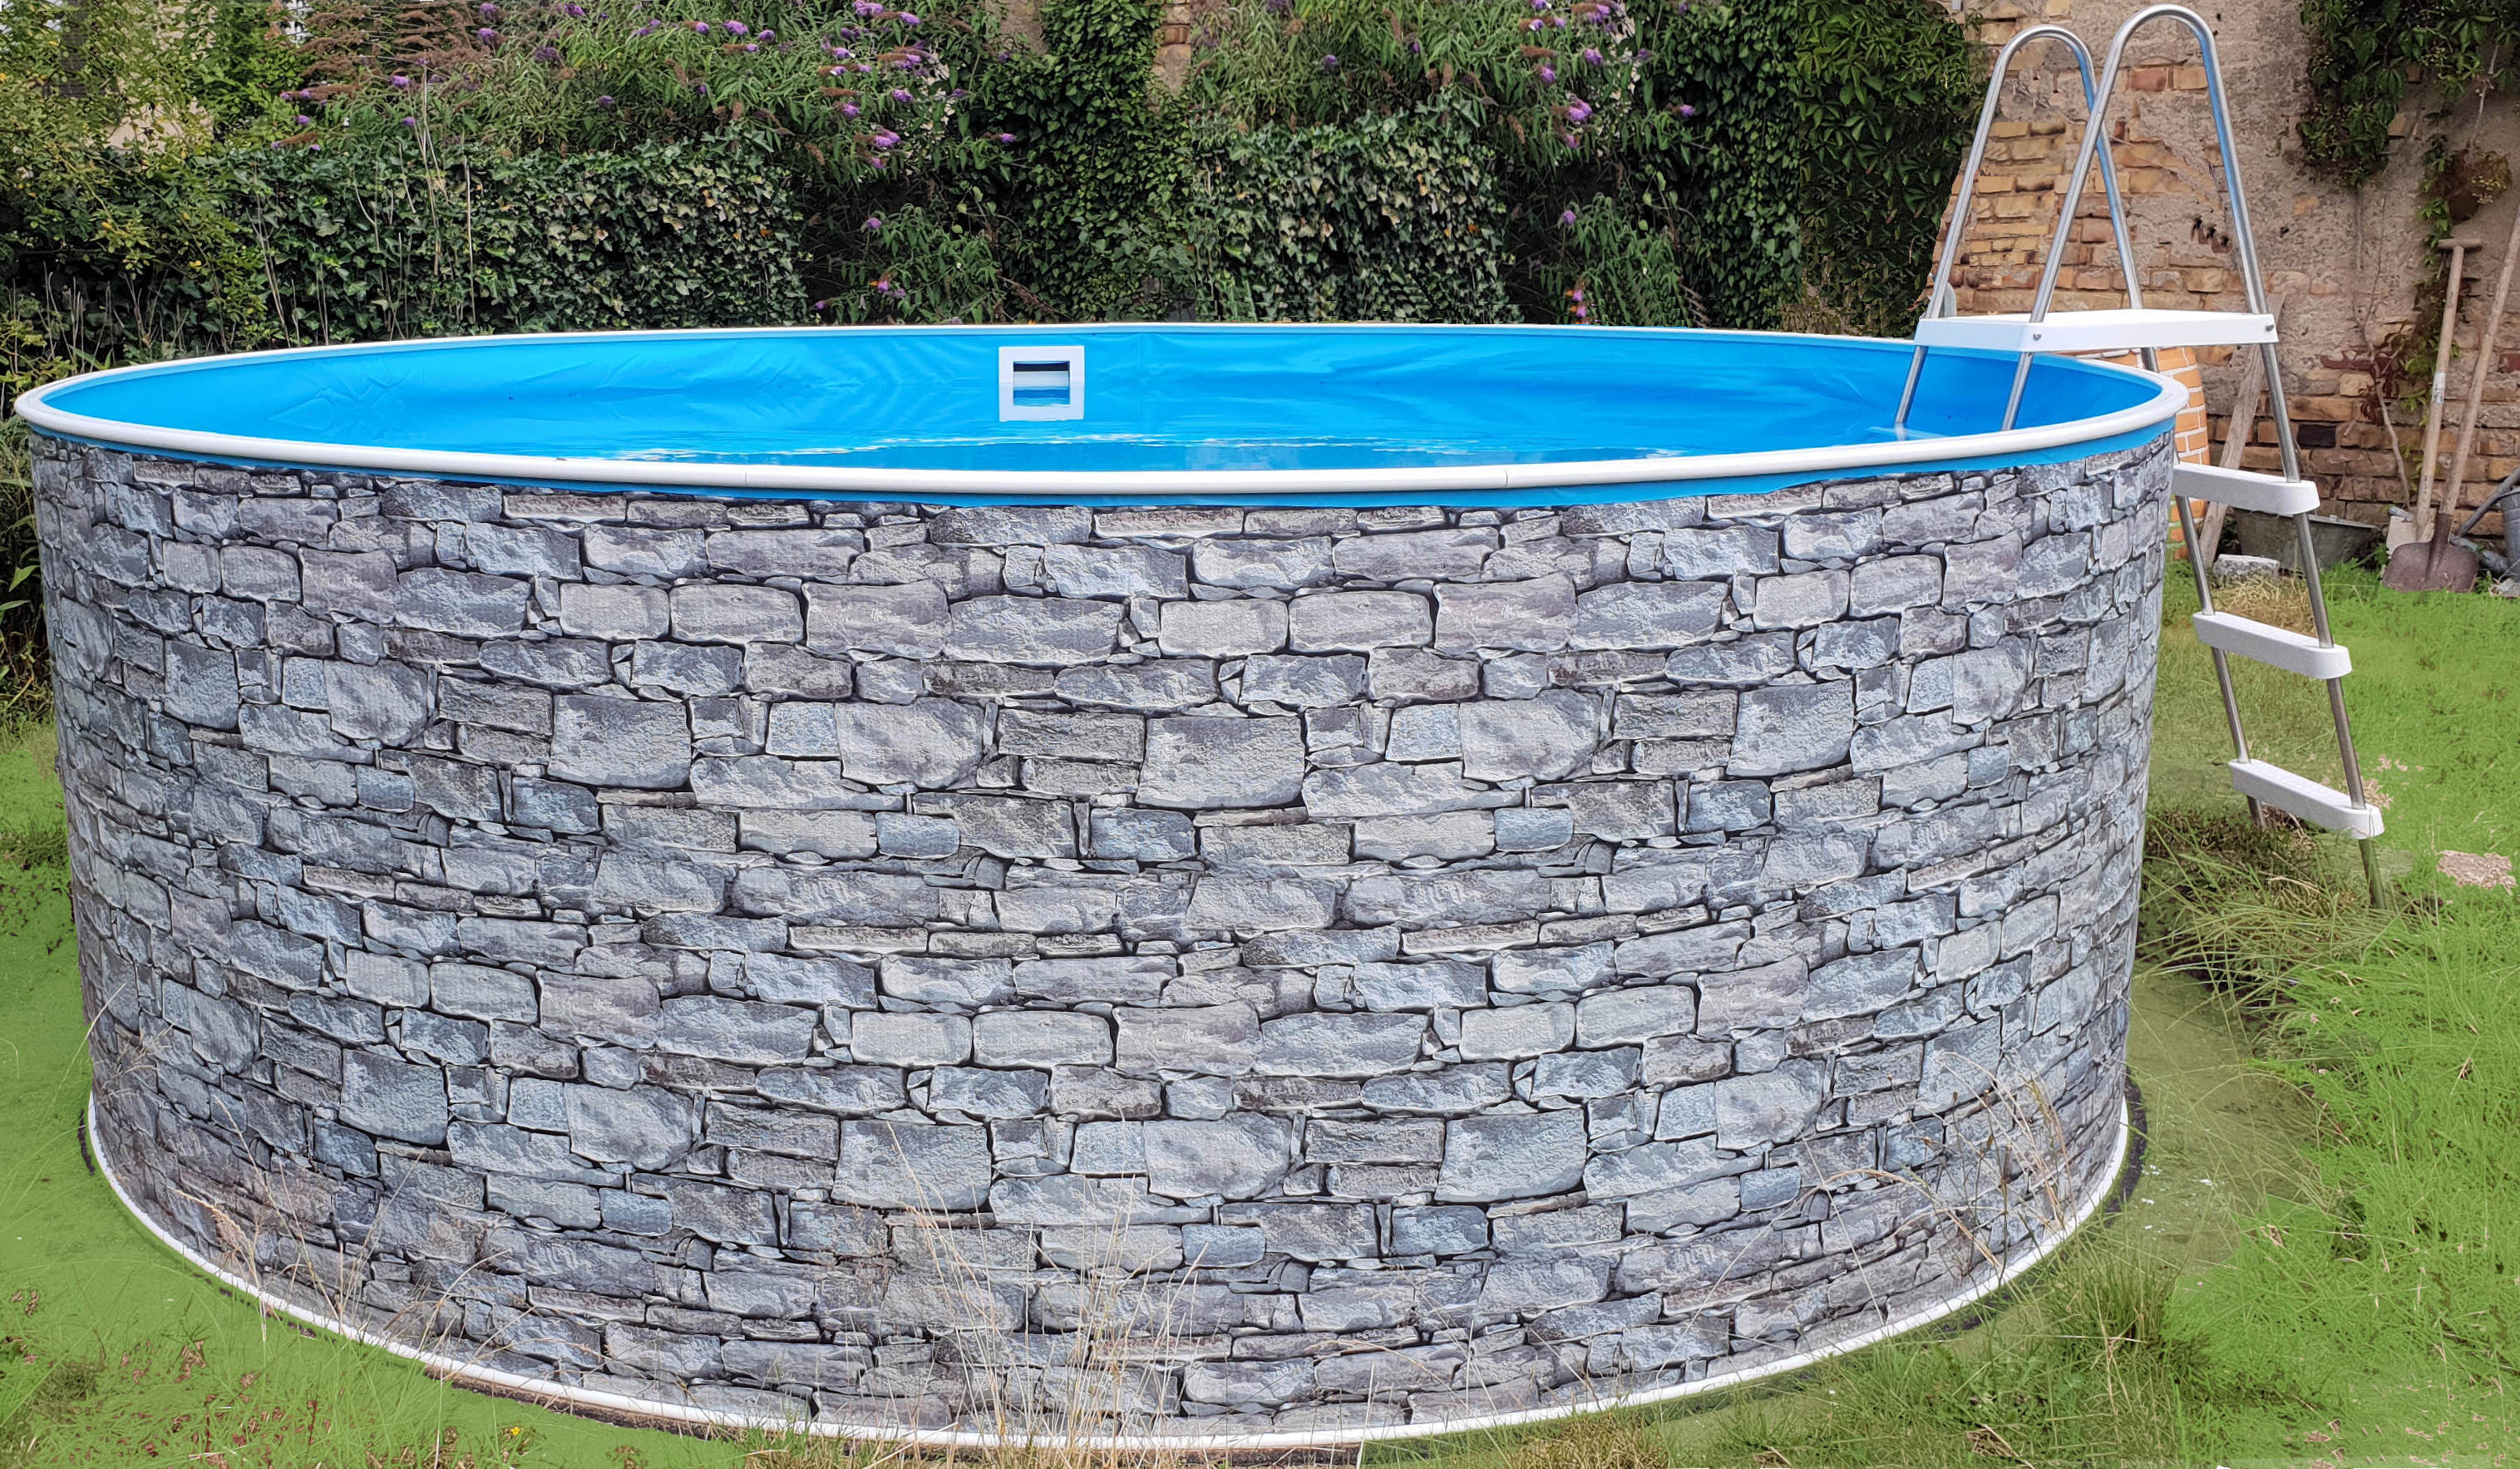 Turbo Swimmingpool, Swimmingpools, Pool, Pools, Rundbecken, Ovalbecken ZI08